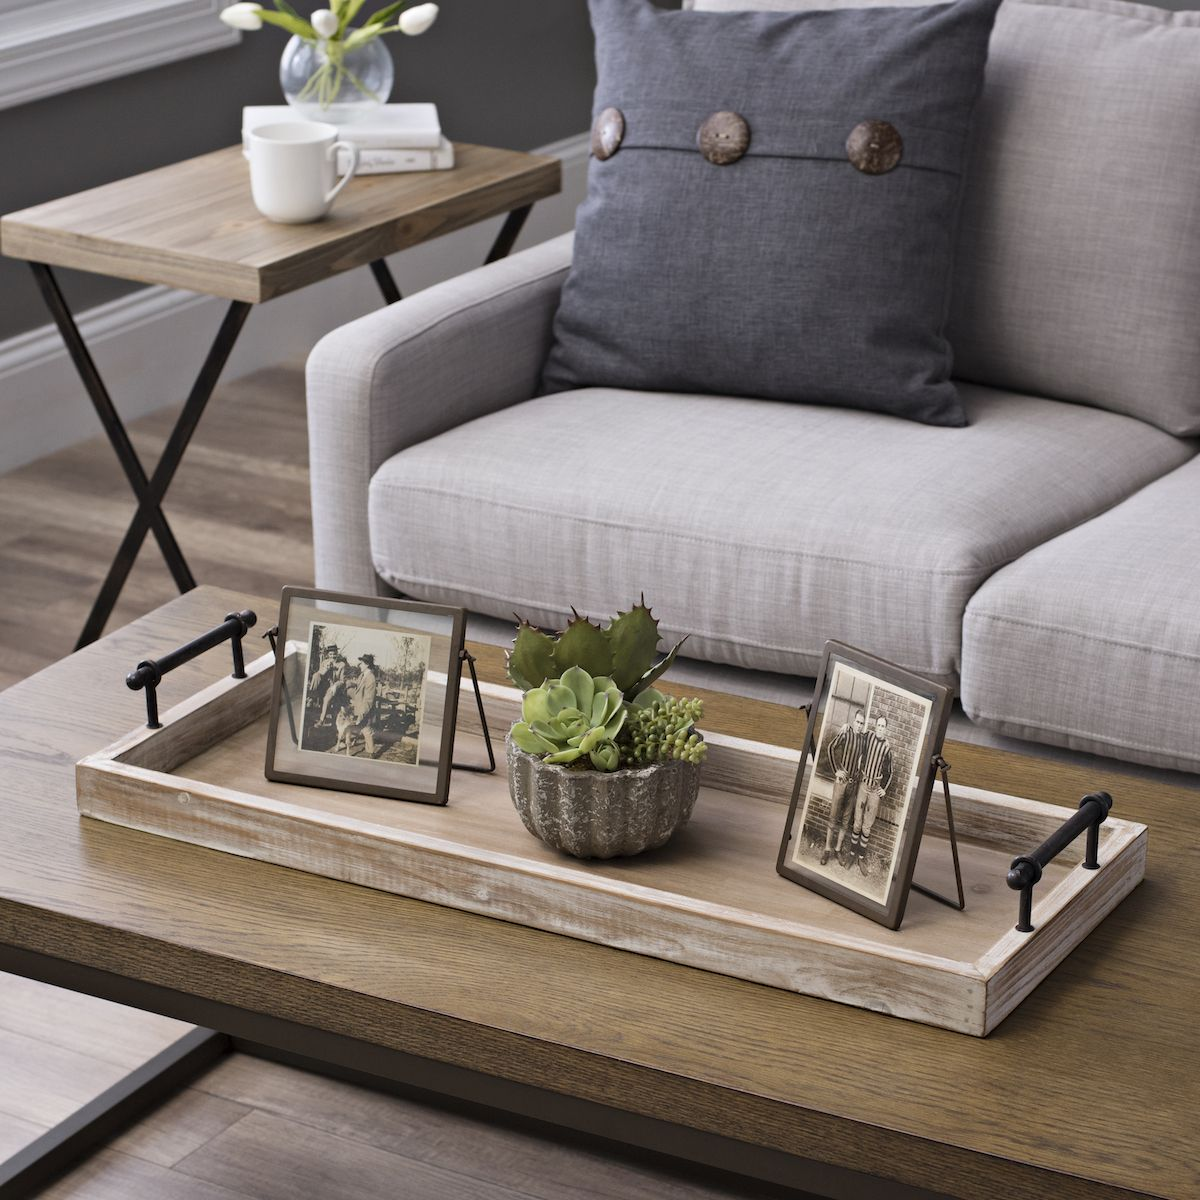 Wooden Decorative Trays Custom Wooden Decorative Tray With Metal Handles  Coffee Table Tray Review